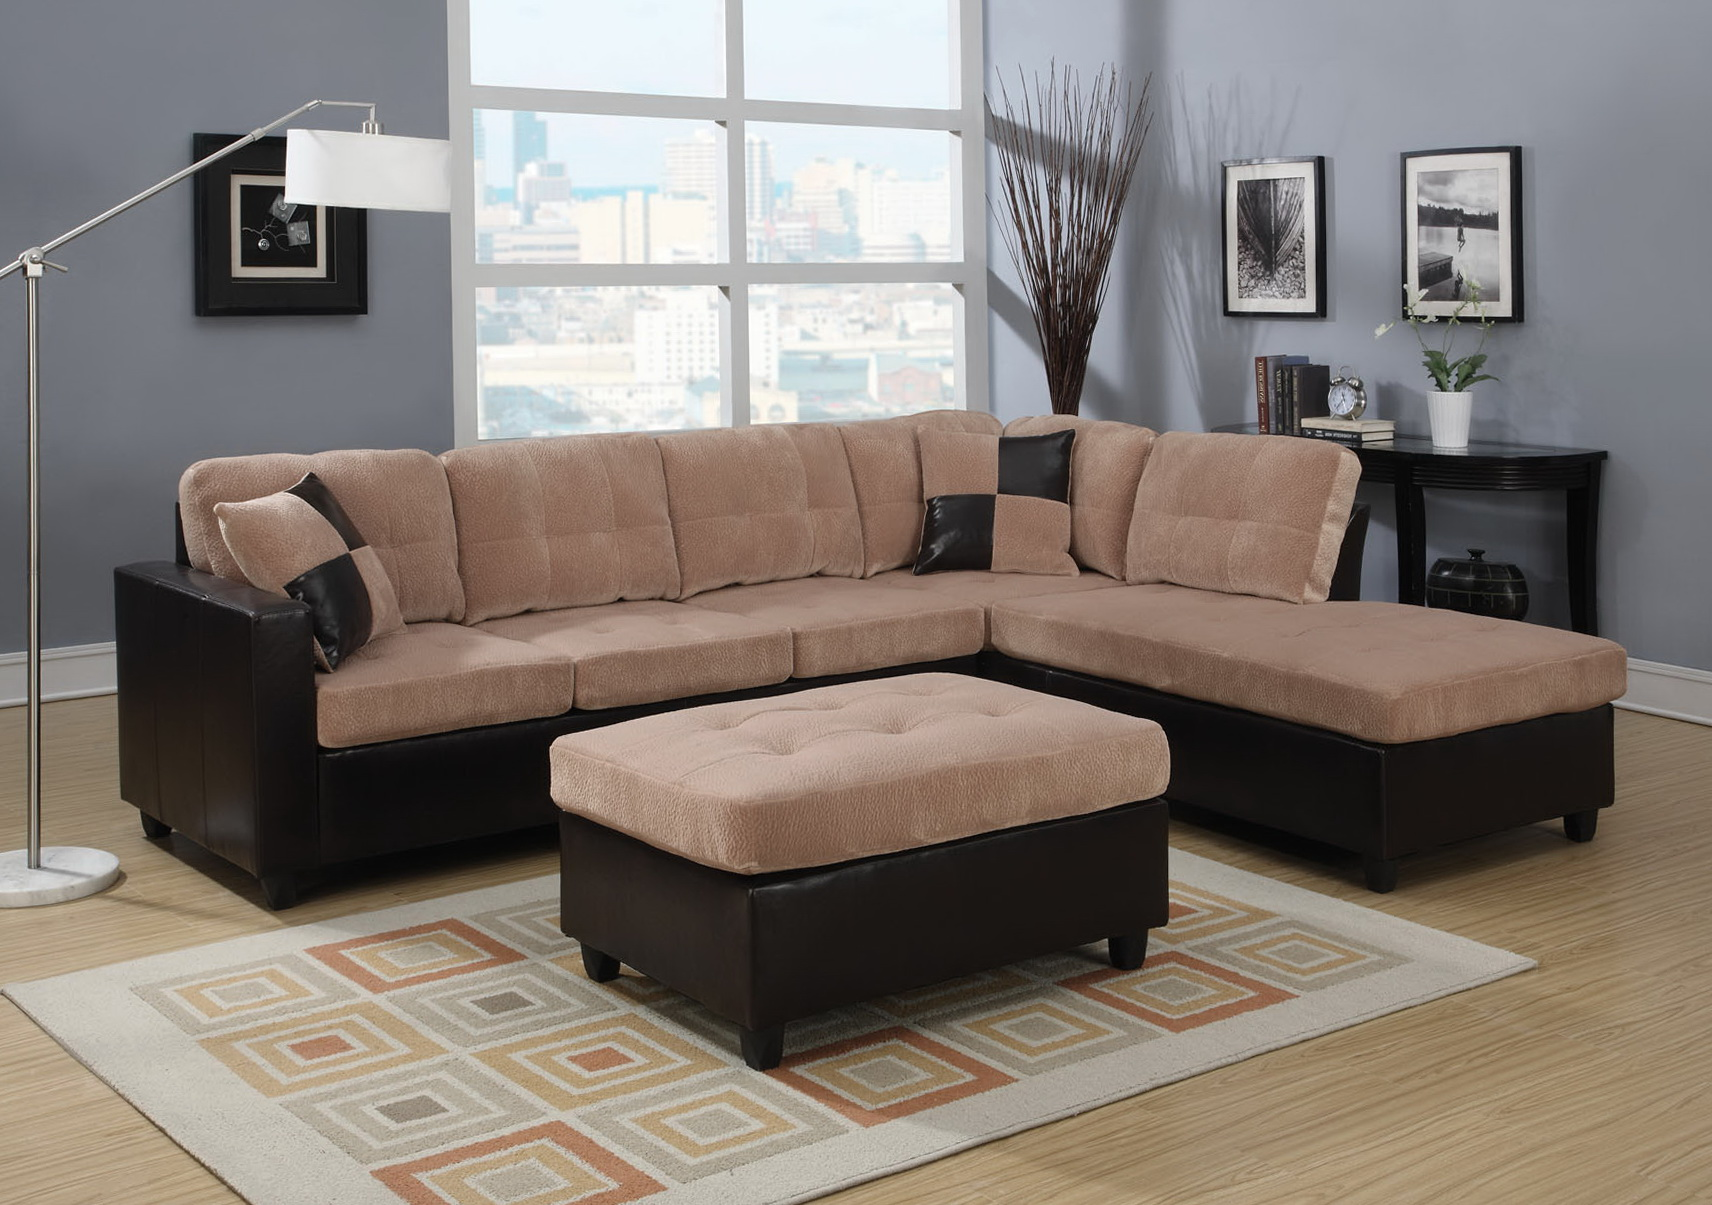 Discount Sectional Sofas Los Angeles